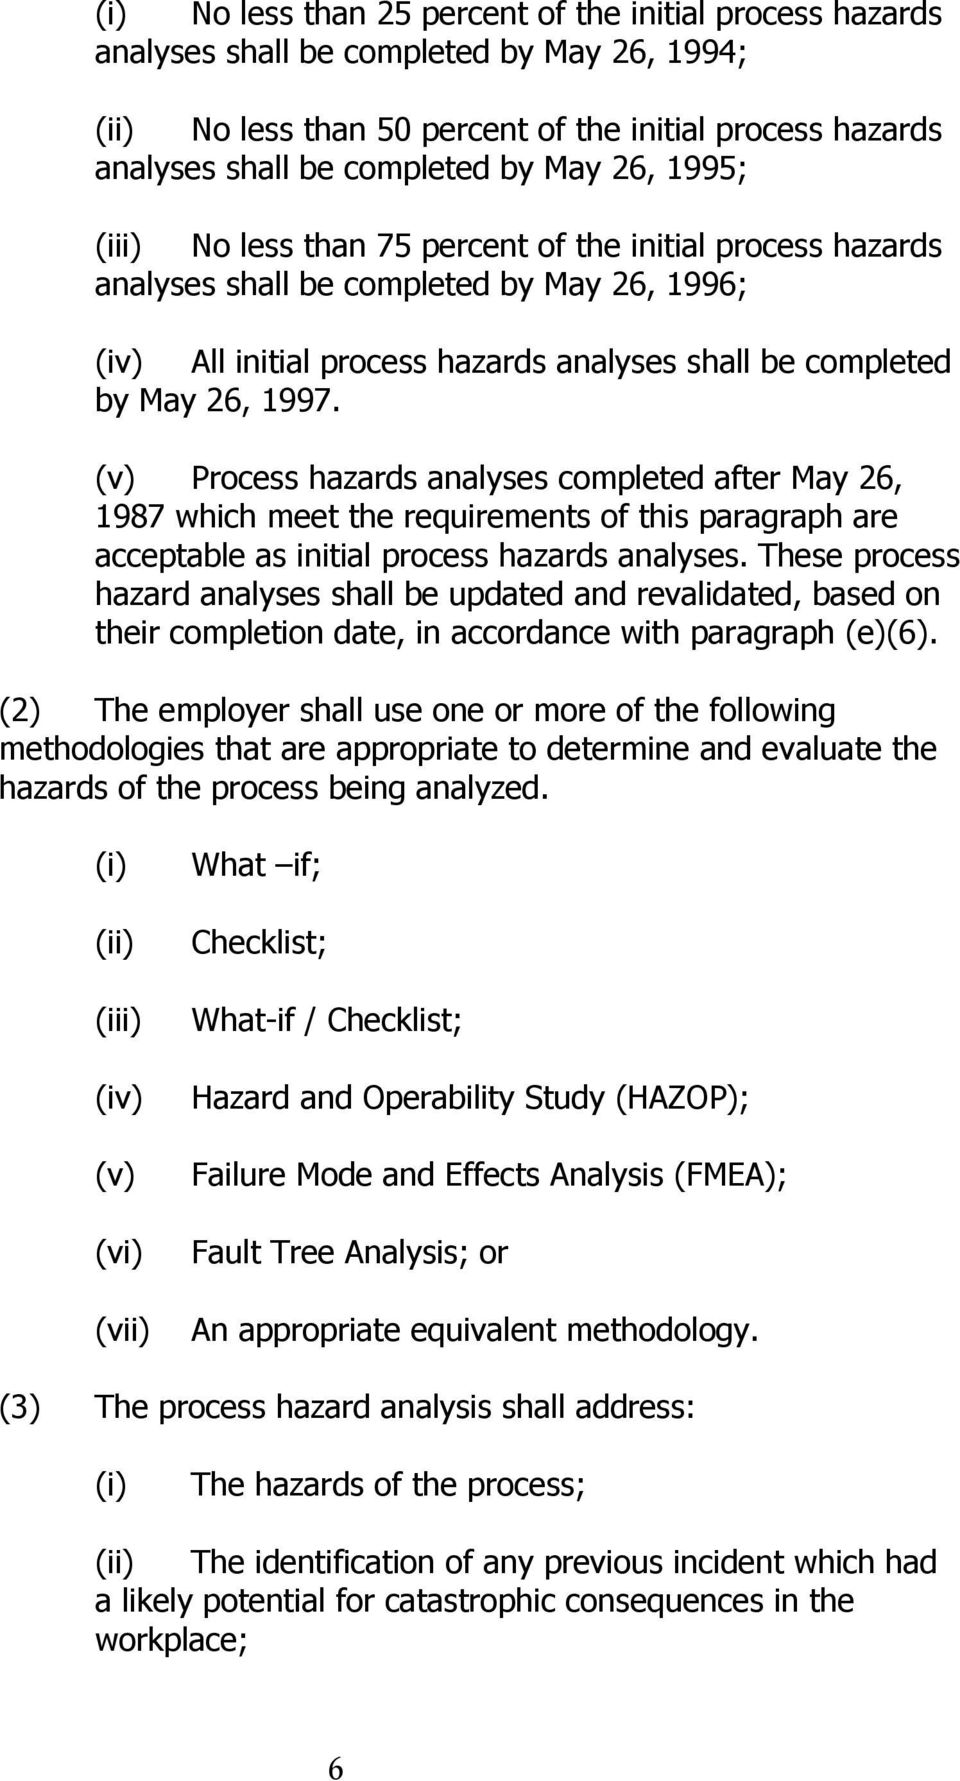 (v) Process hazards analyses completed after May 26, 1987 which meet the requirements of this paragraph are acceptable as initial process hazards analyses.